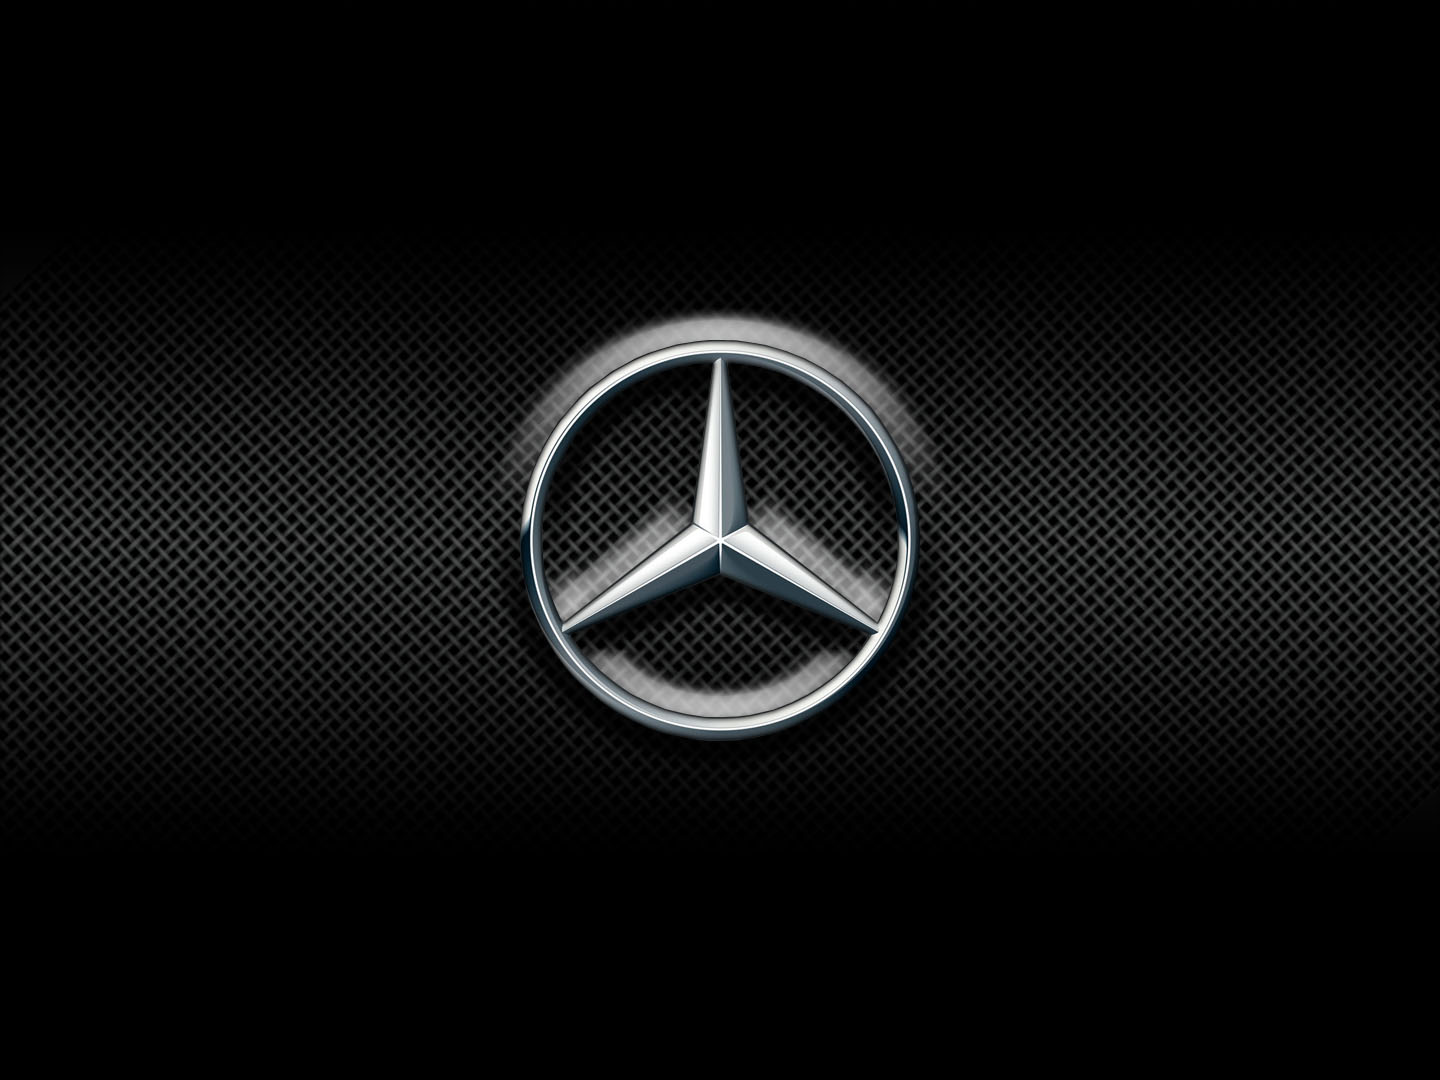 Mercedes logo mercedes benz car symbol meaning and history car mercedes car logo voltagebd Image collections